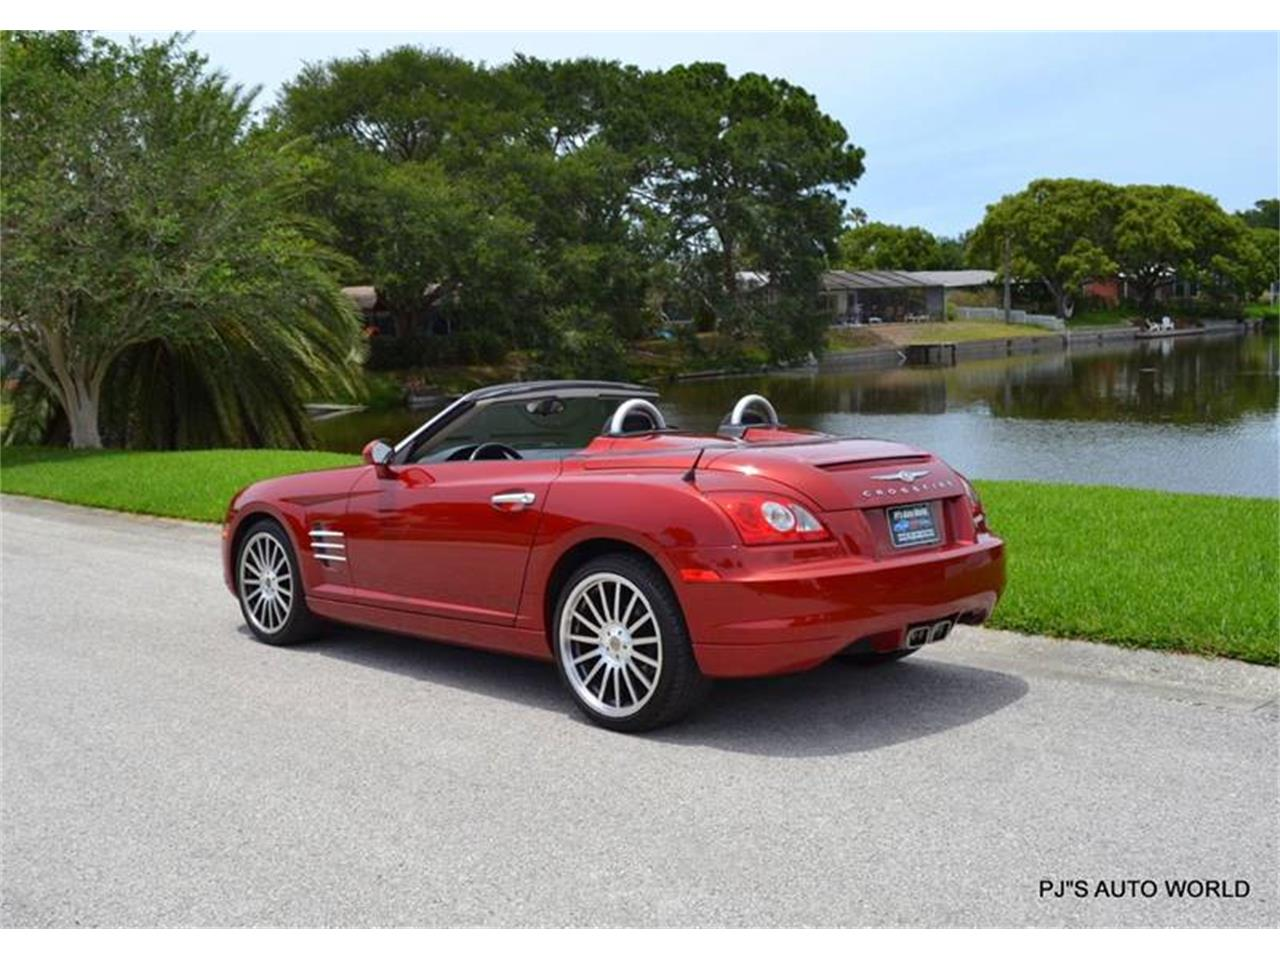 Large Picture of '05 Crossfire located in Clearwater Florida - $10,900.00 Offered by PJ's Auto World - L7XM